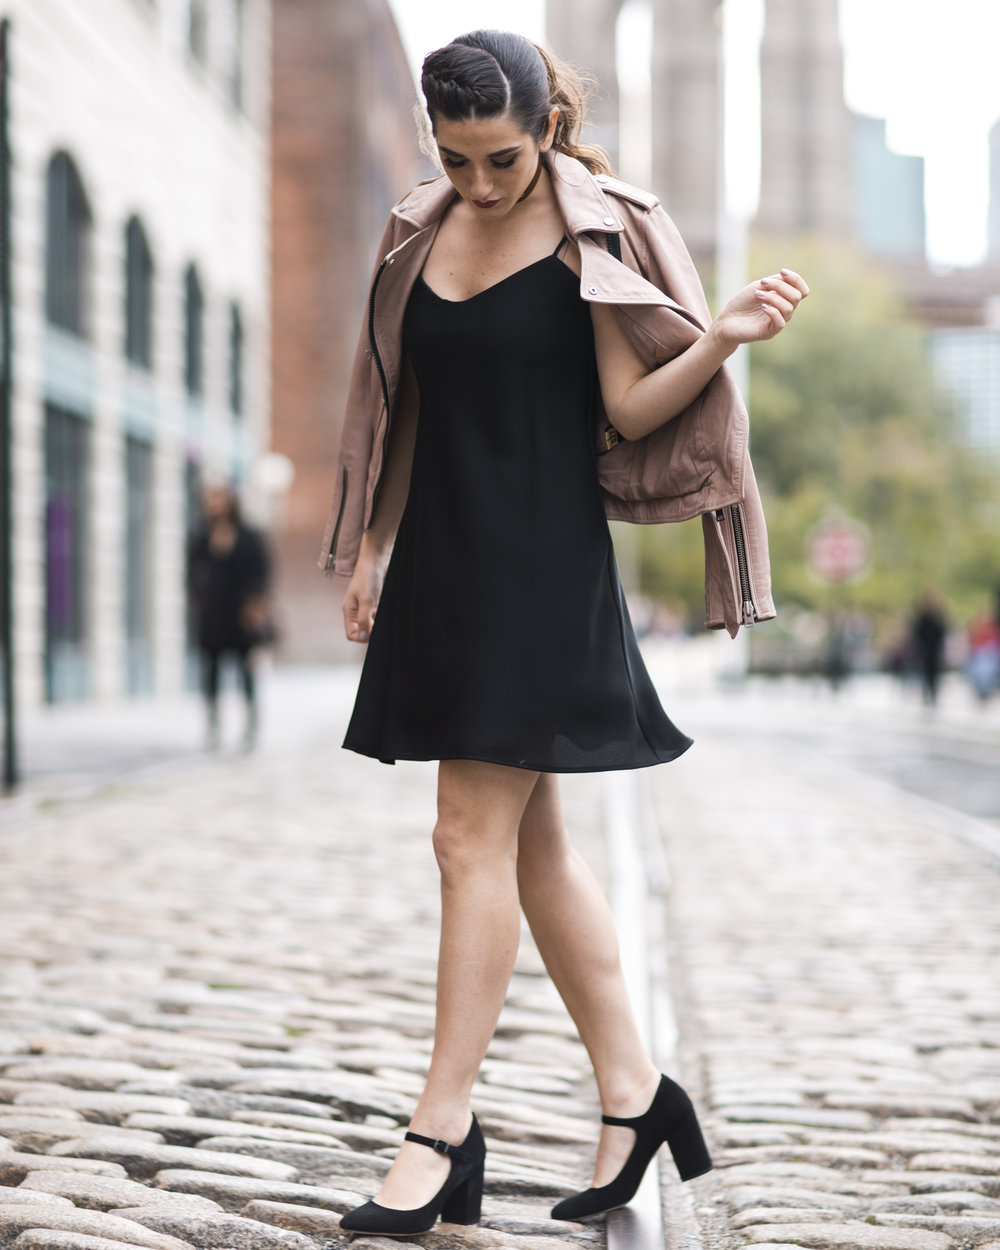 Pink Leather Jacket Erin Dana Choker Louboutins & Love Fashion Blog Esther Santer NYC Street Style Blogger Outfit OOTD Trendy All Saints Hair Inspo Fall Look Via Spiga Black Shoes Bloomingdales Slip Dress Girl Model Women Dumbo Pretty Shop Accessories.jpg